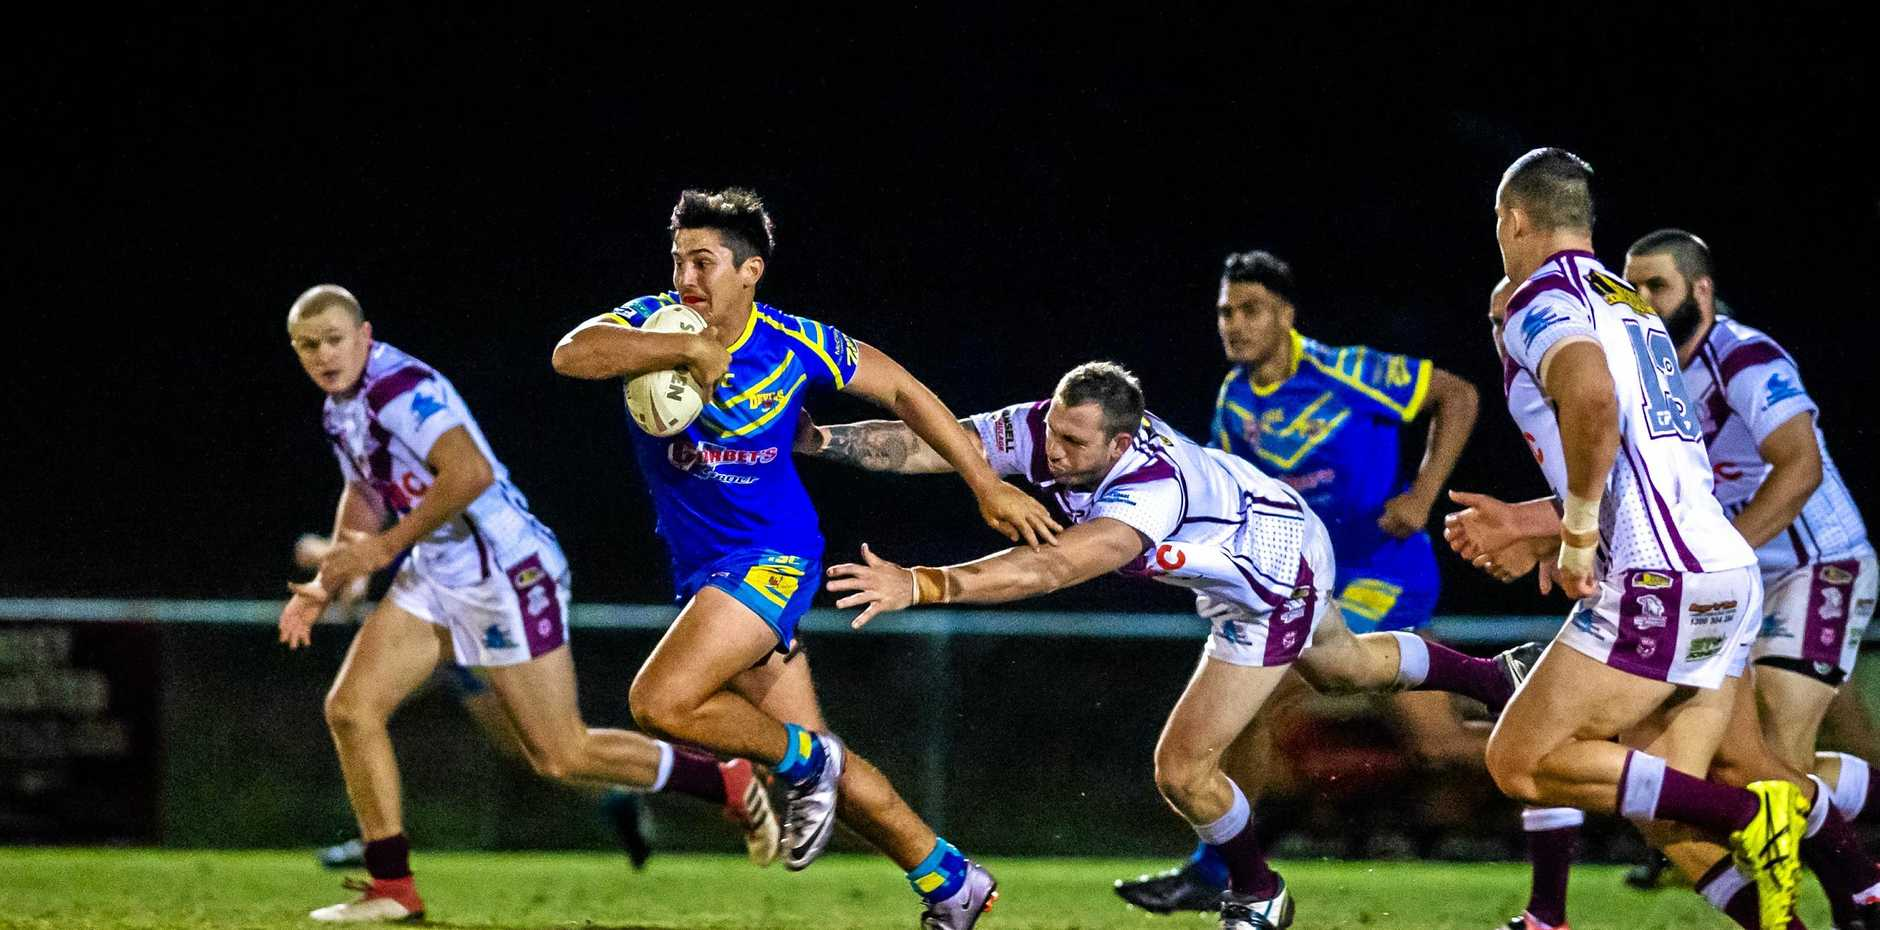 Lachlan Garrels of the Gympie Devils makes a break for it from Kawana's defenders.